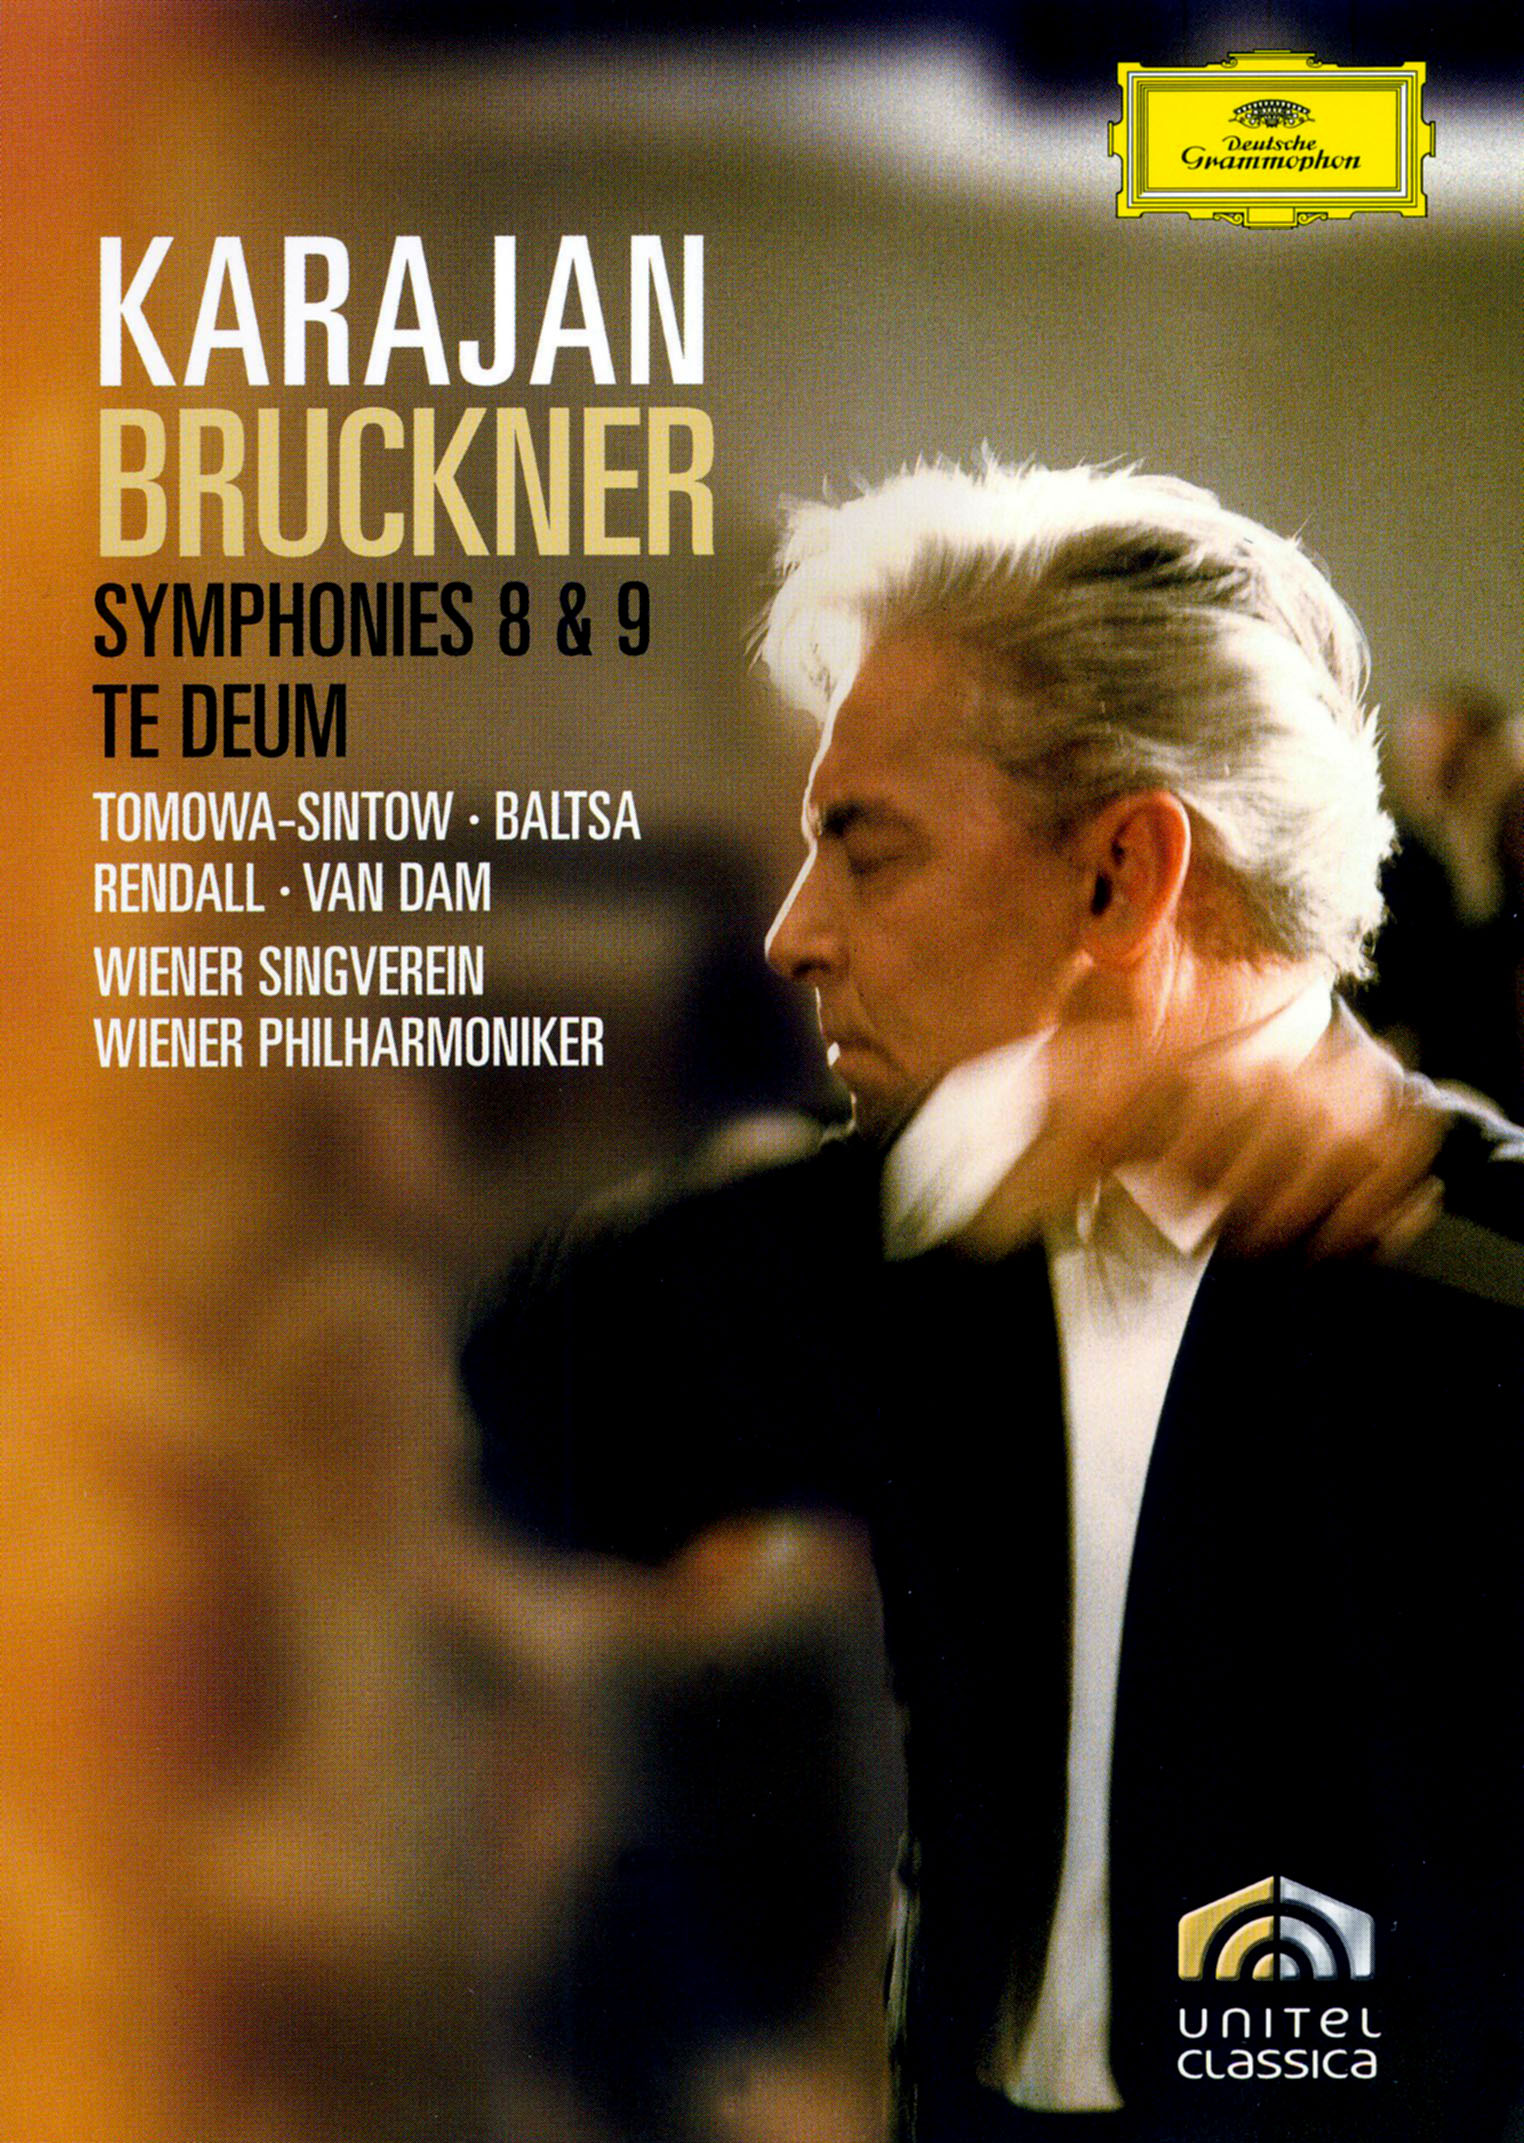 Herbert Von Karajan - His Legacy for Home Video: Anton Bruckner - Symphony No. 9